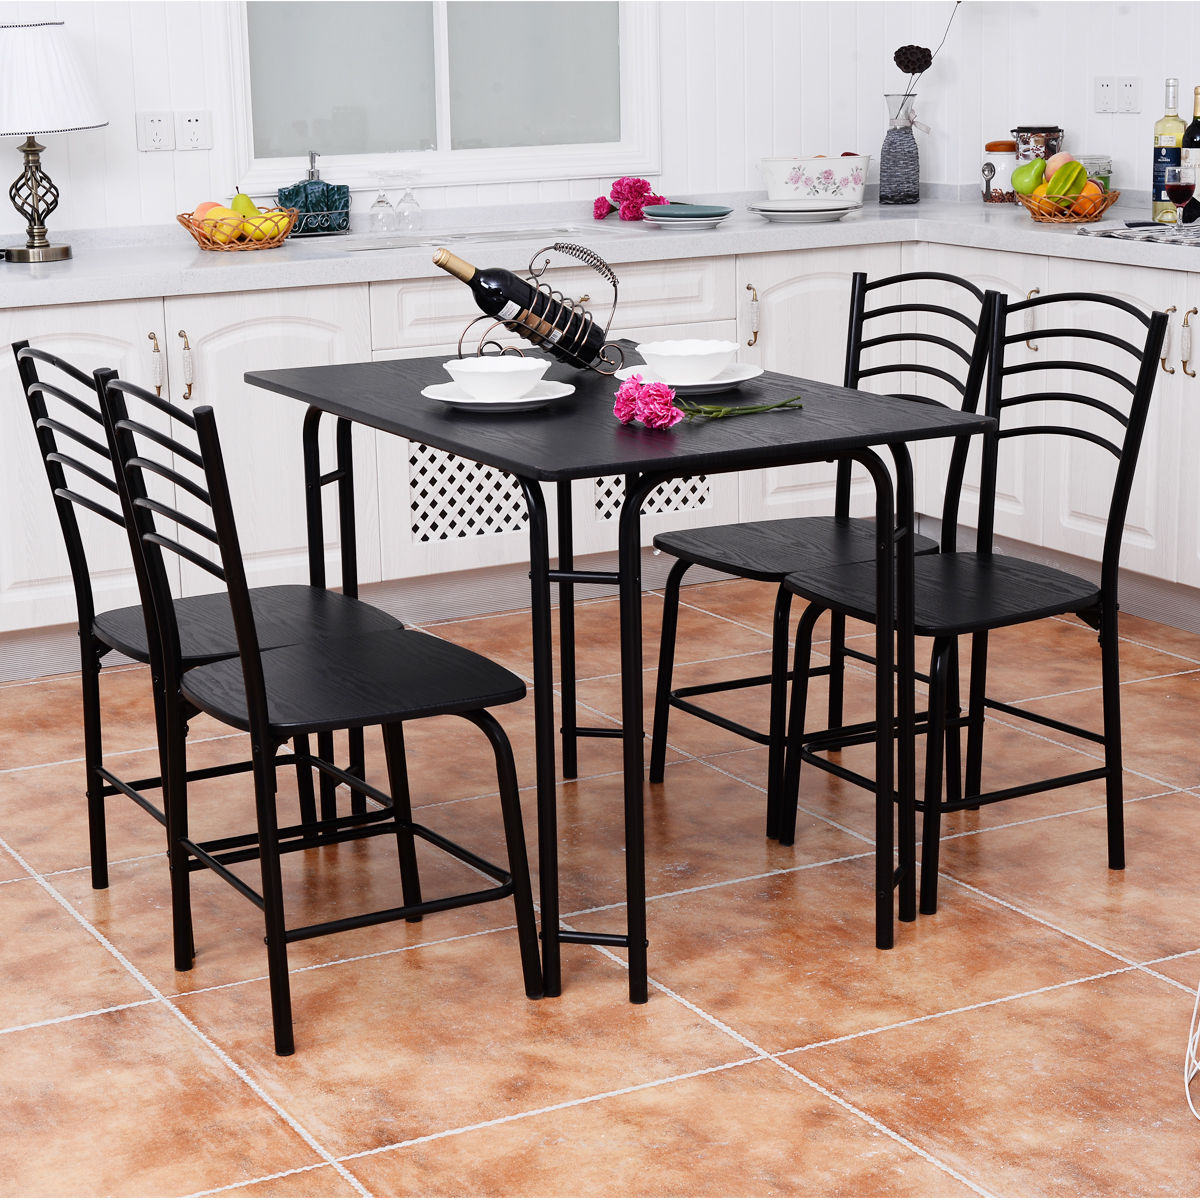 Costway 5 PCS Black Dining Room Set Table 4 Chairs Steel Frame Home Kitchen Furniture by Costway